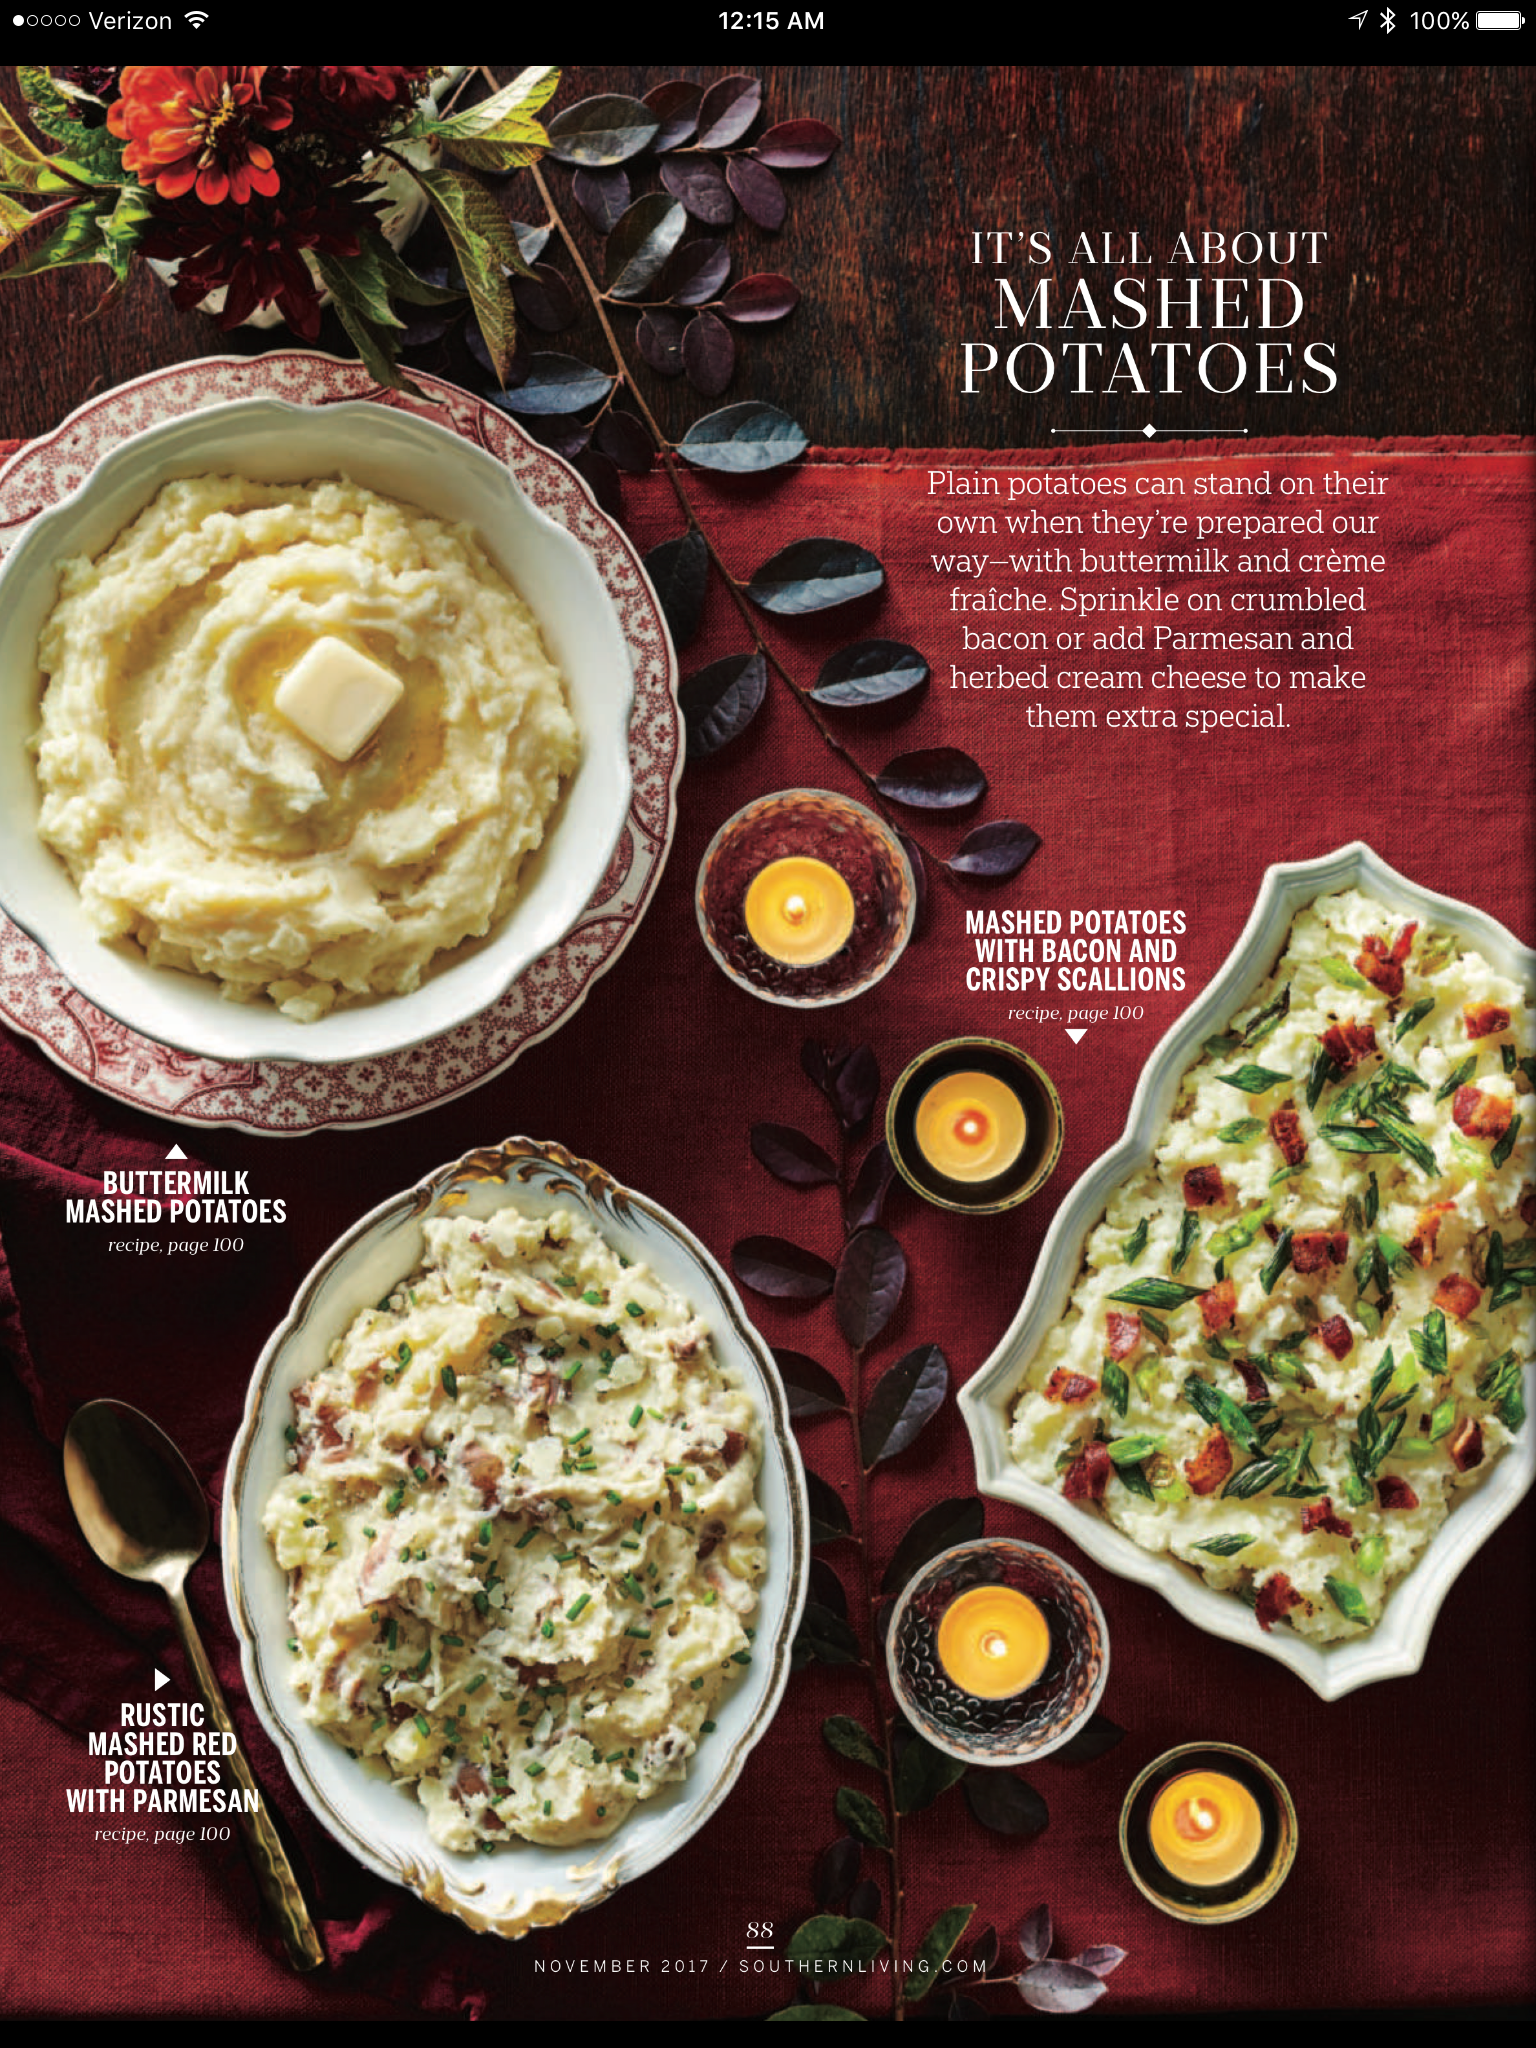 Three Versions Of Mashed Potatoes Page 1 Of 2 Bacon Mashed Potatoes Crumbled Bacon Buttermilk Mashed Potatoes